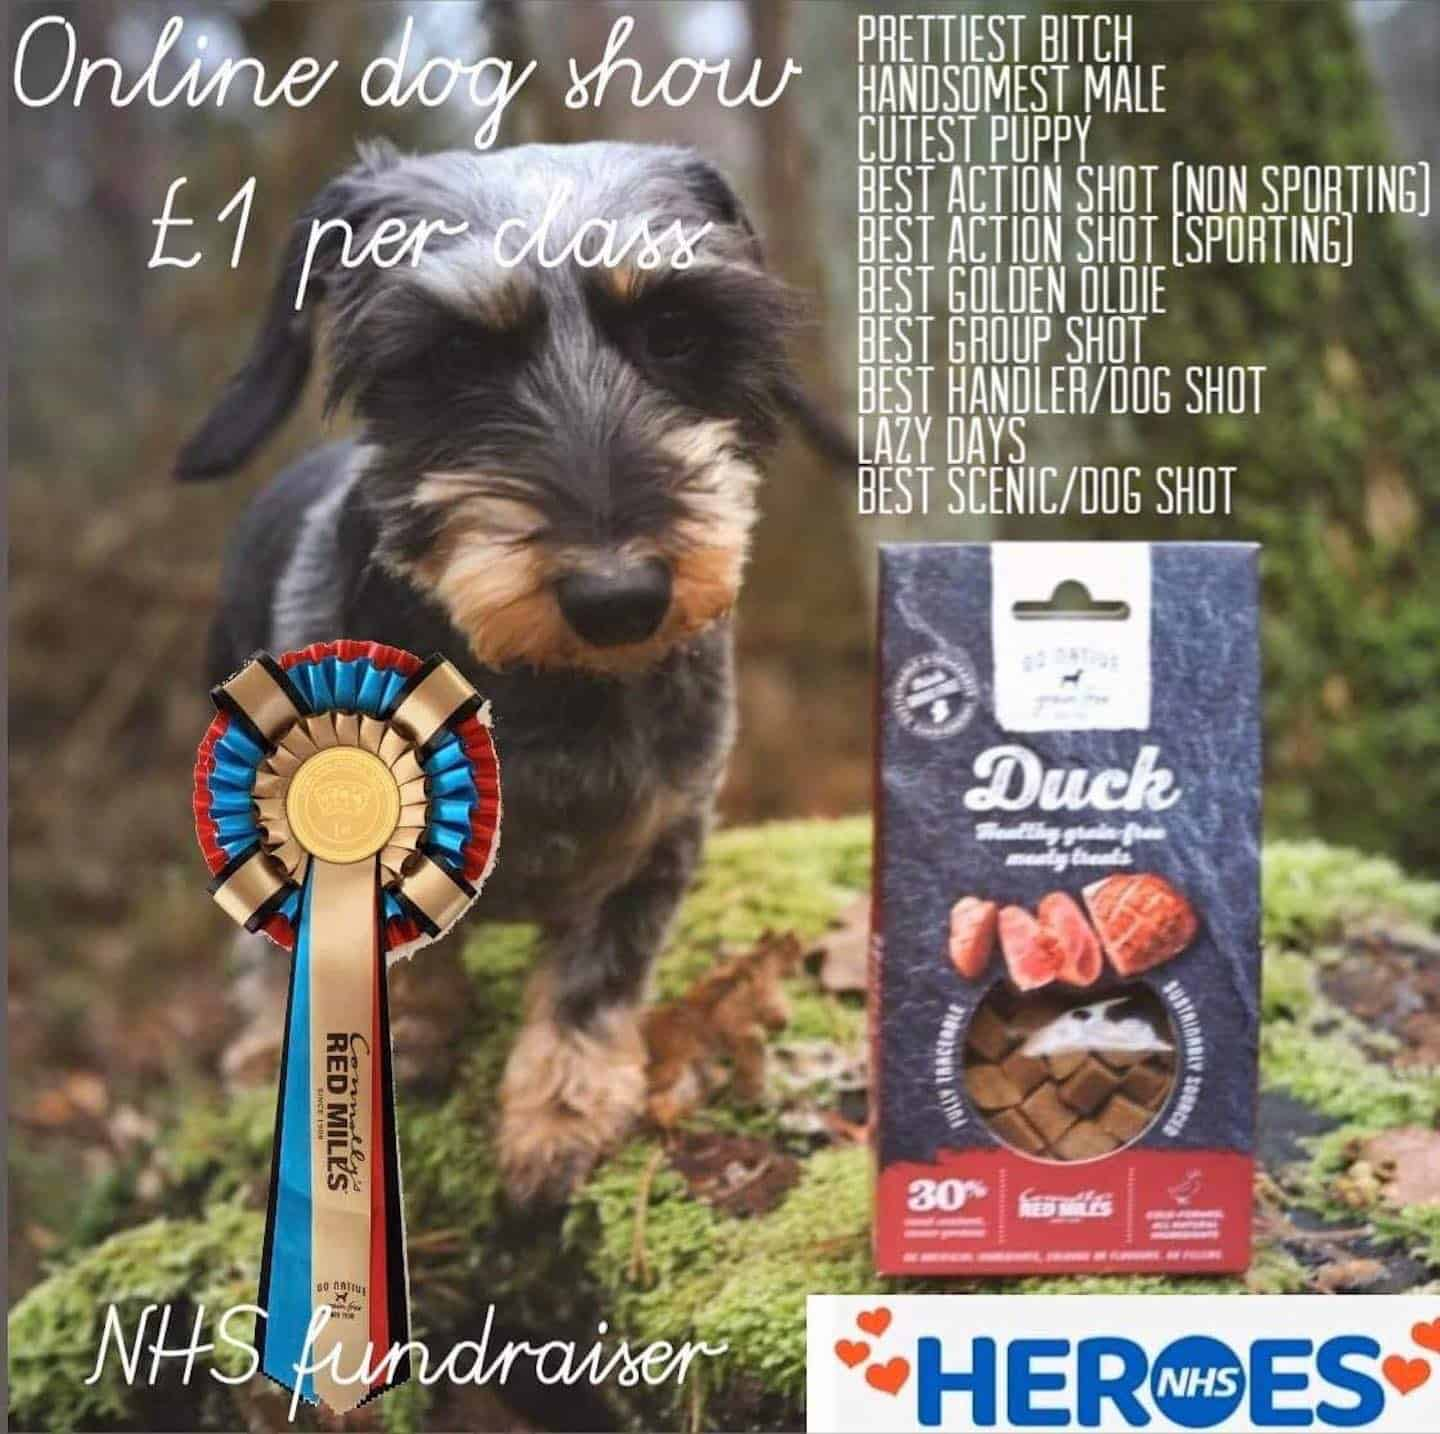 Aces Flyball Online Dog Show for NHS Heroes